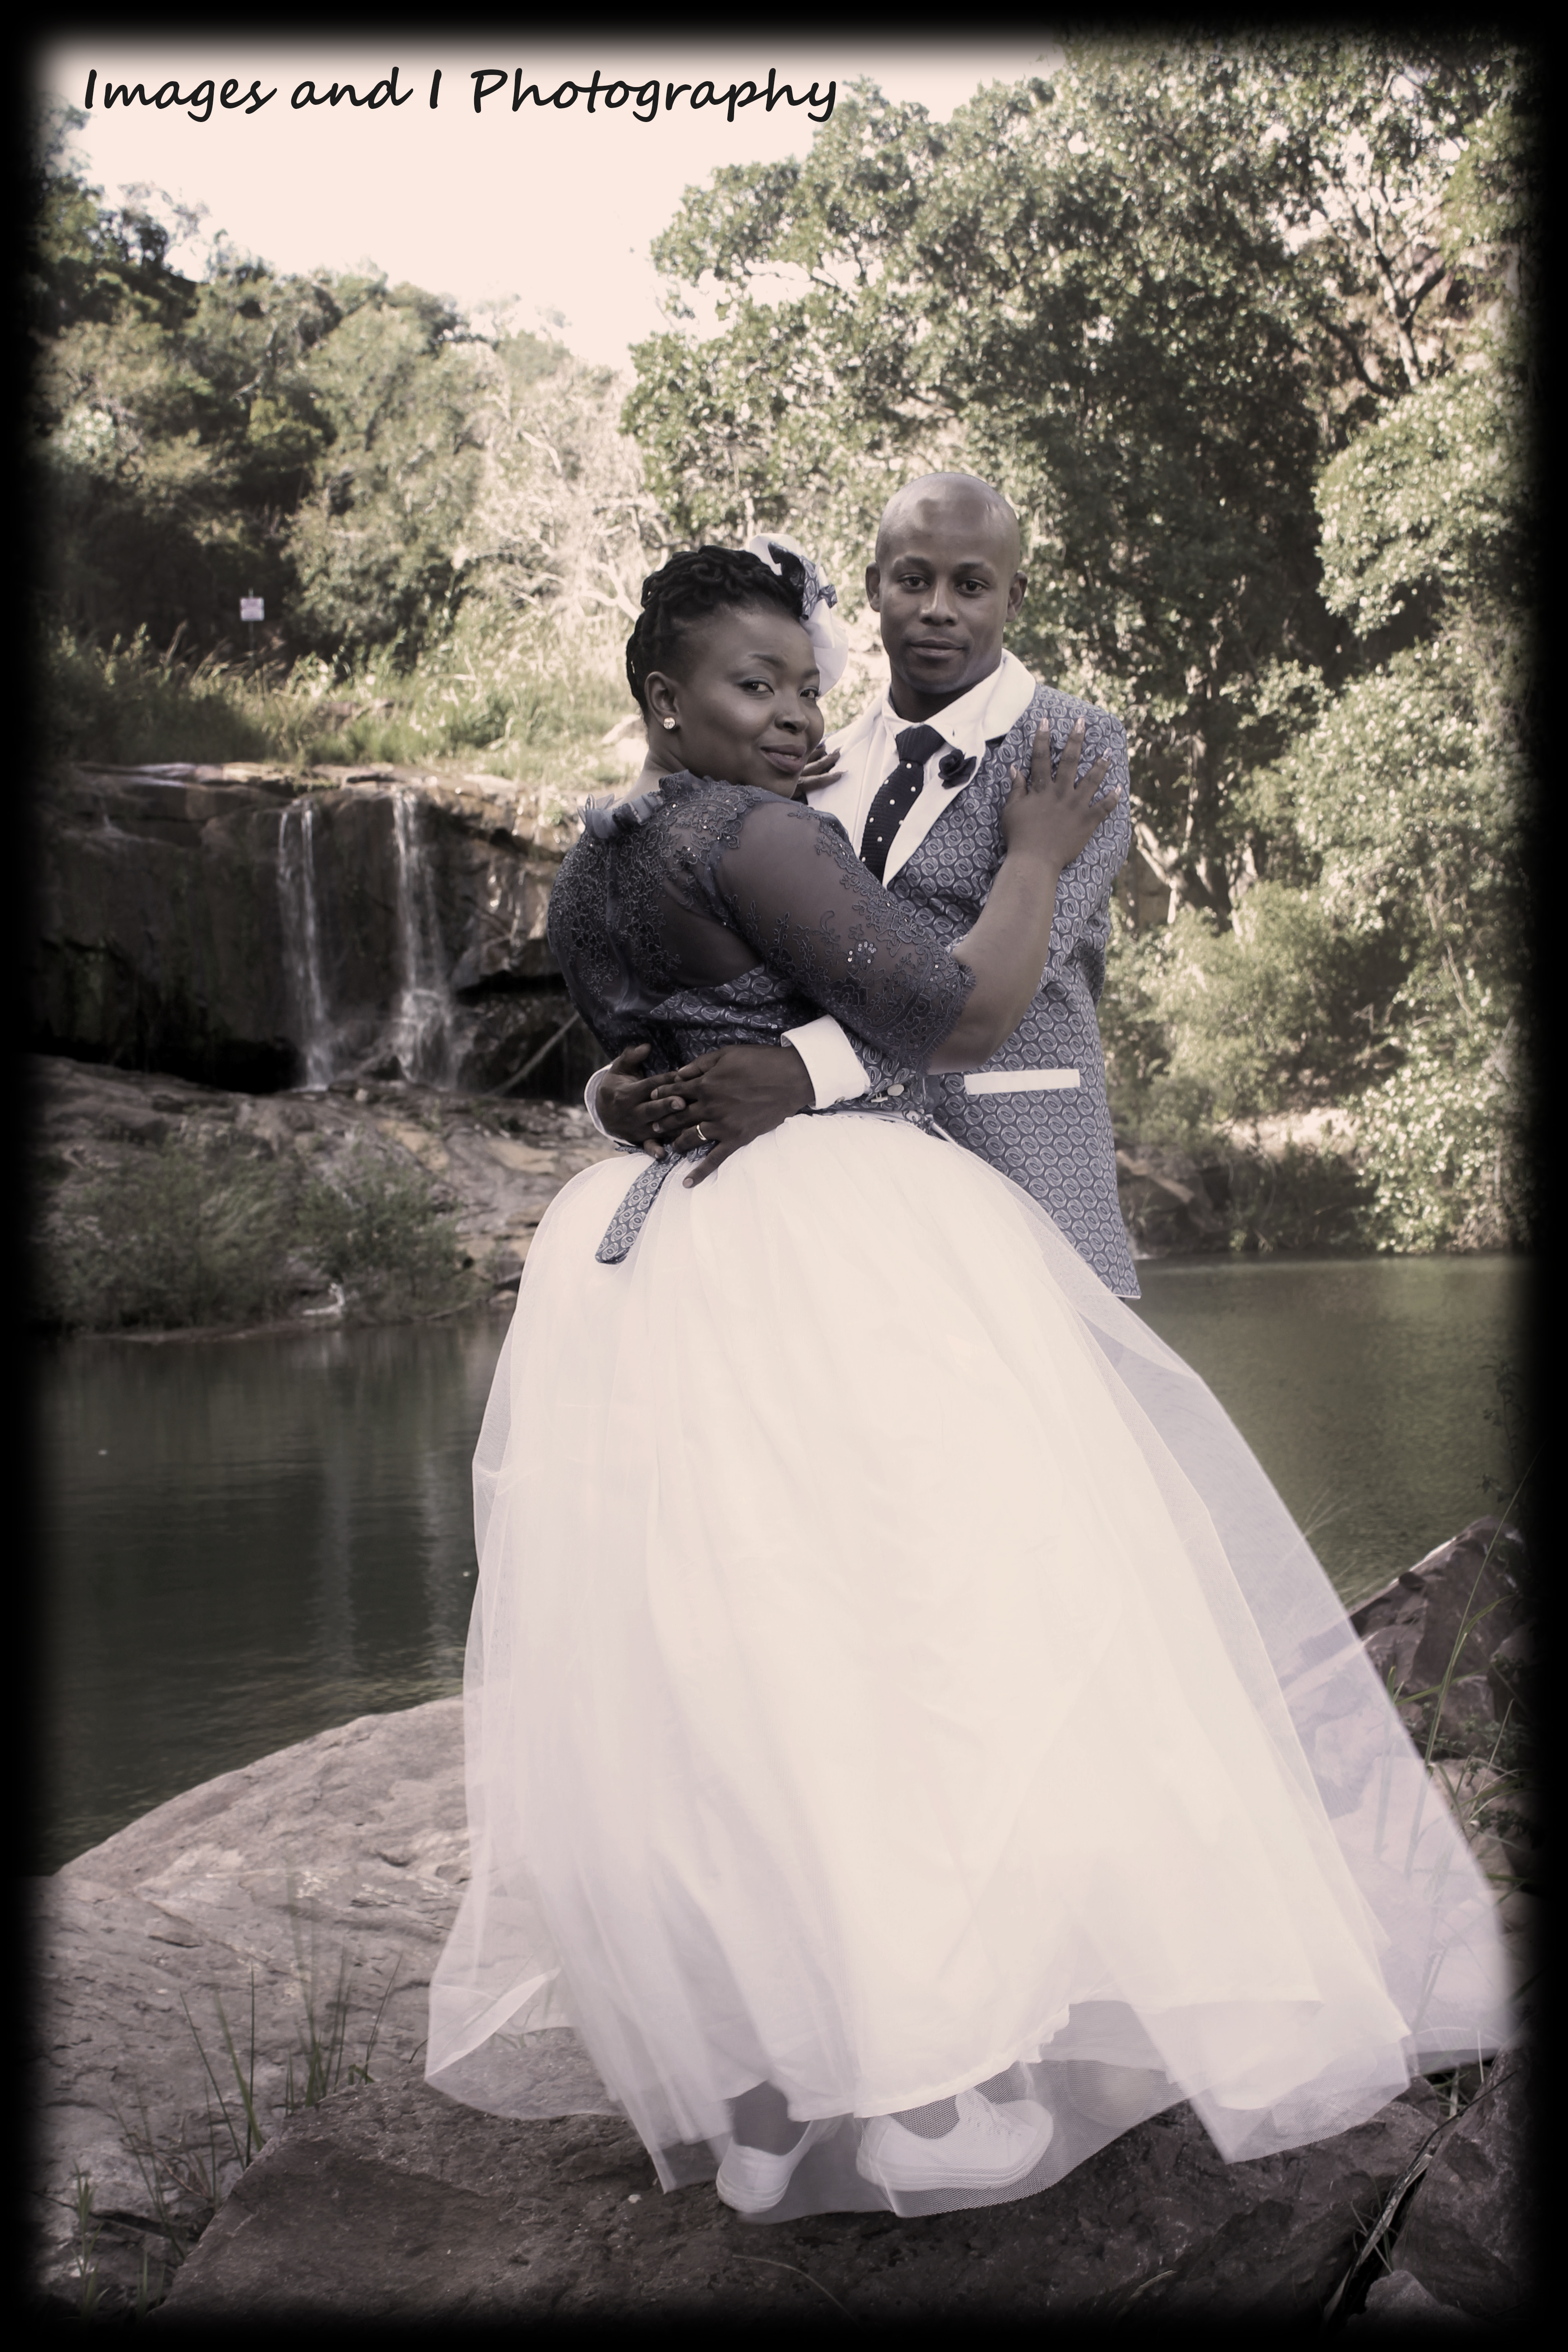 ATKV Klein-Kariba Wedding Waterfall Photography | Photoshoots Pretoria